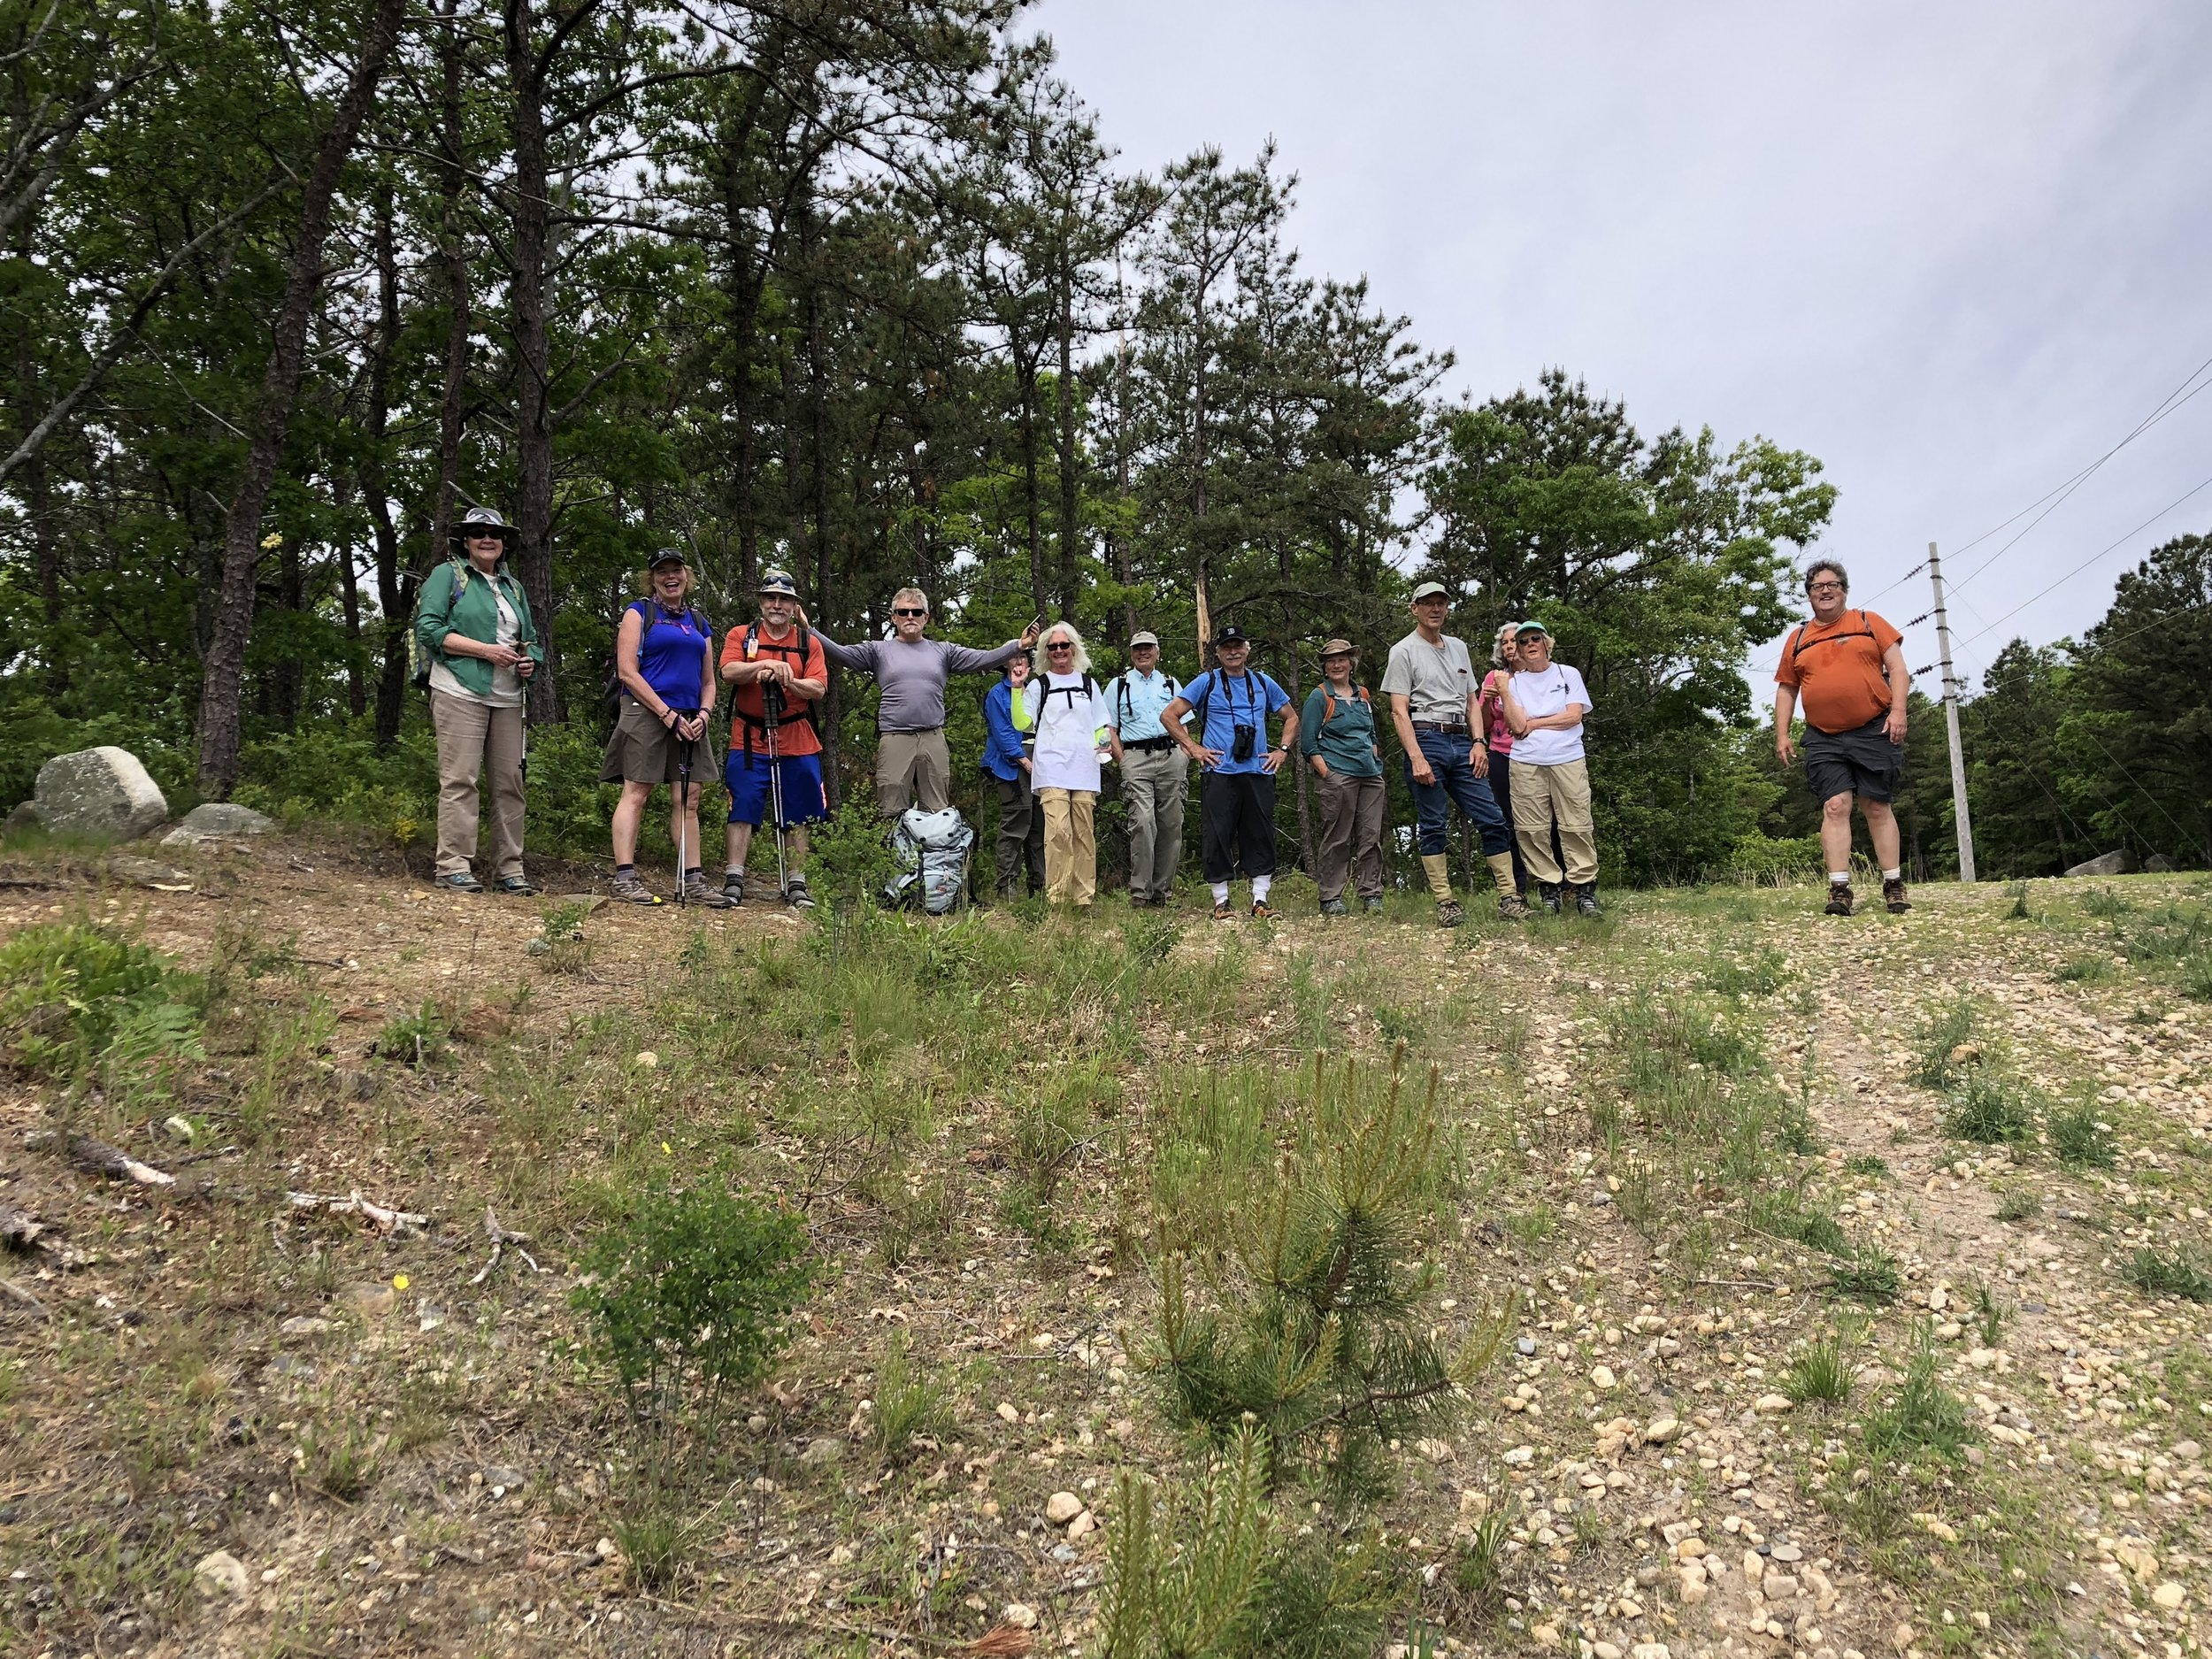 The Day One crew atop the geographic Pine Hills